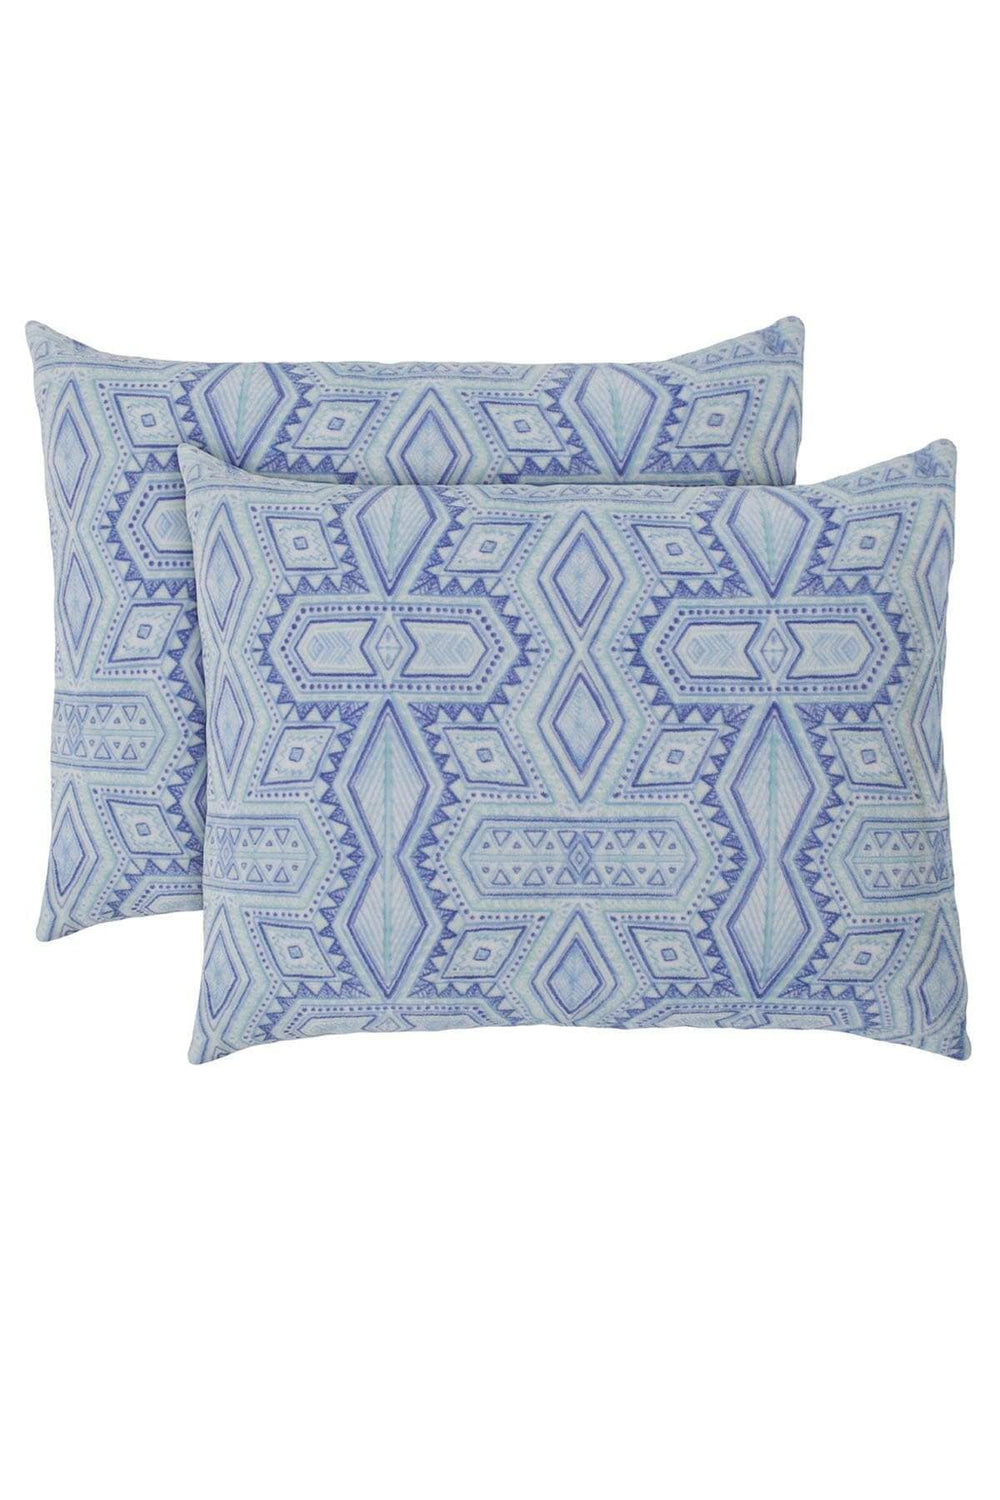 Rory Aqua Ultra Soft Plush Pillow Pair - Ivory Ella - Home